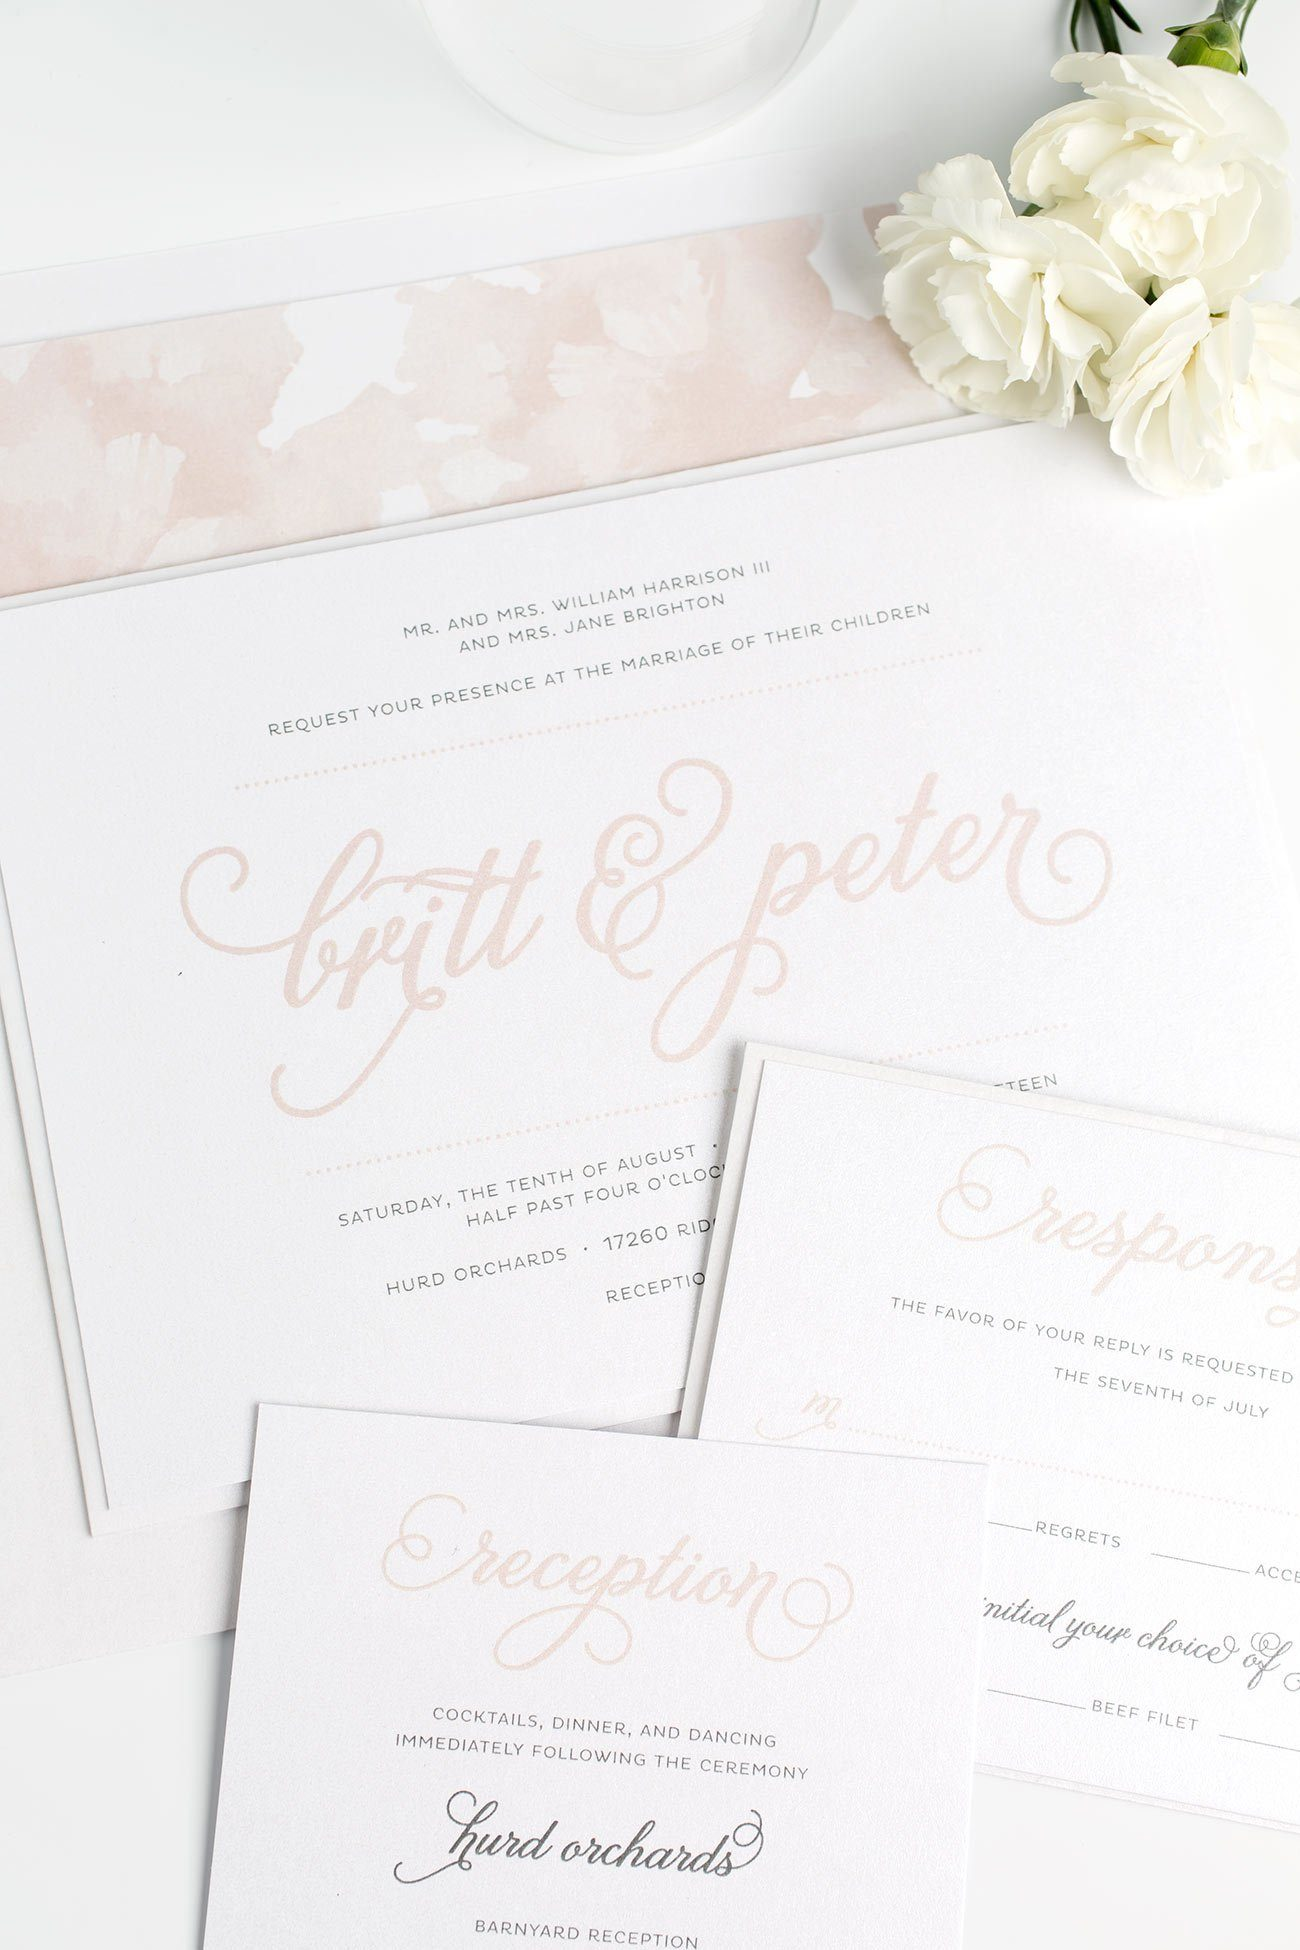 Romantic and Whimsical Wedding Invitations in Rose Gold with a Floral Watercolor Envelope Liner